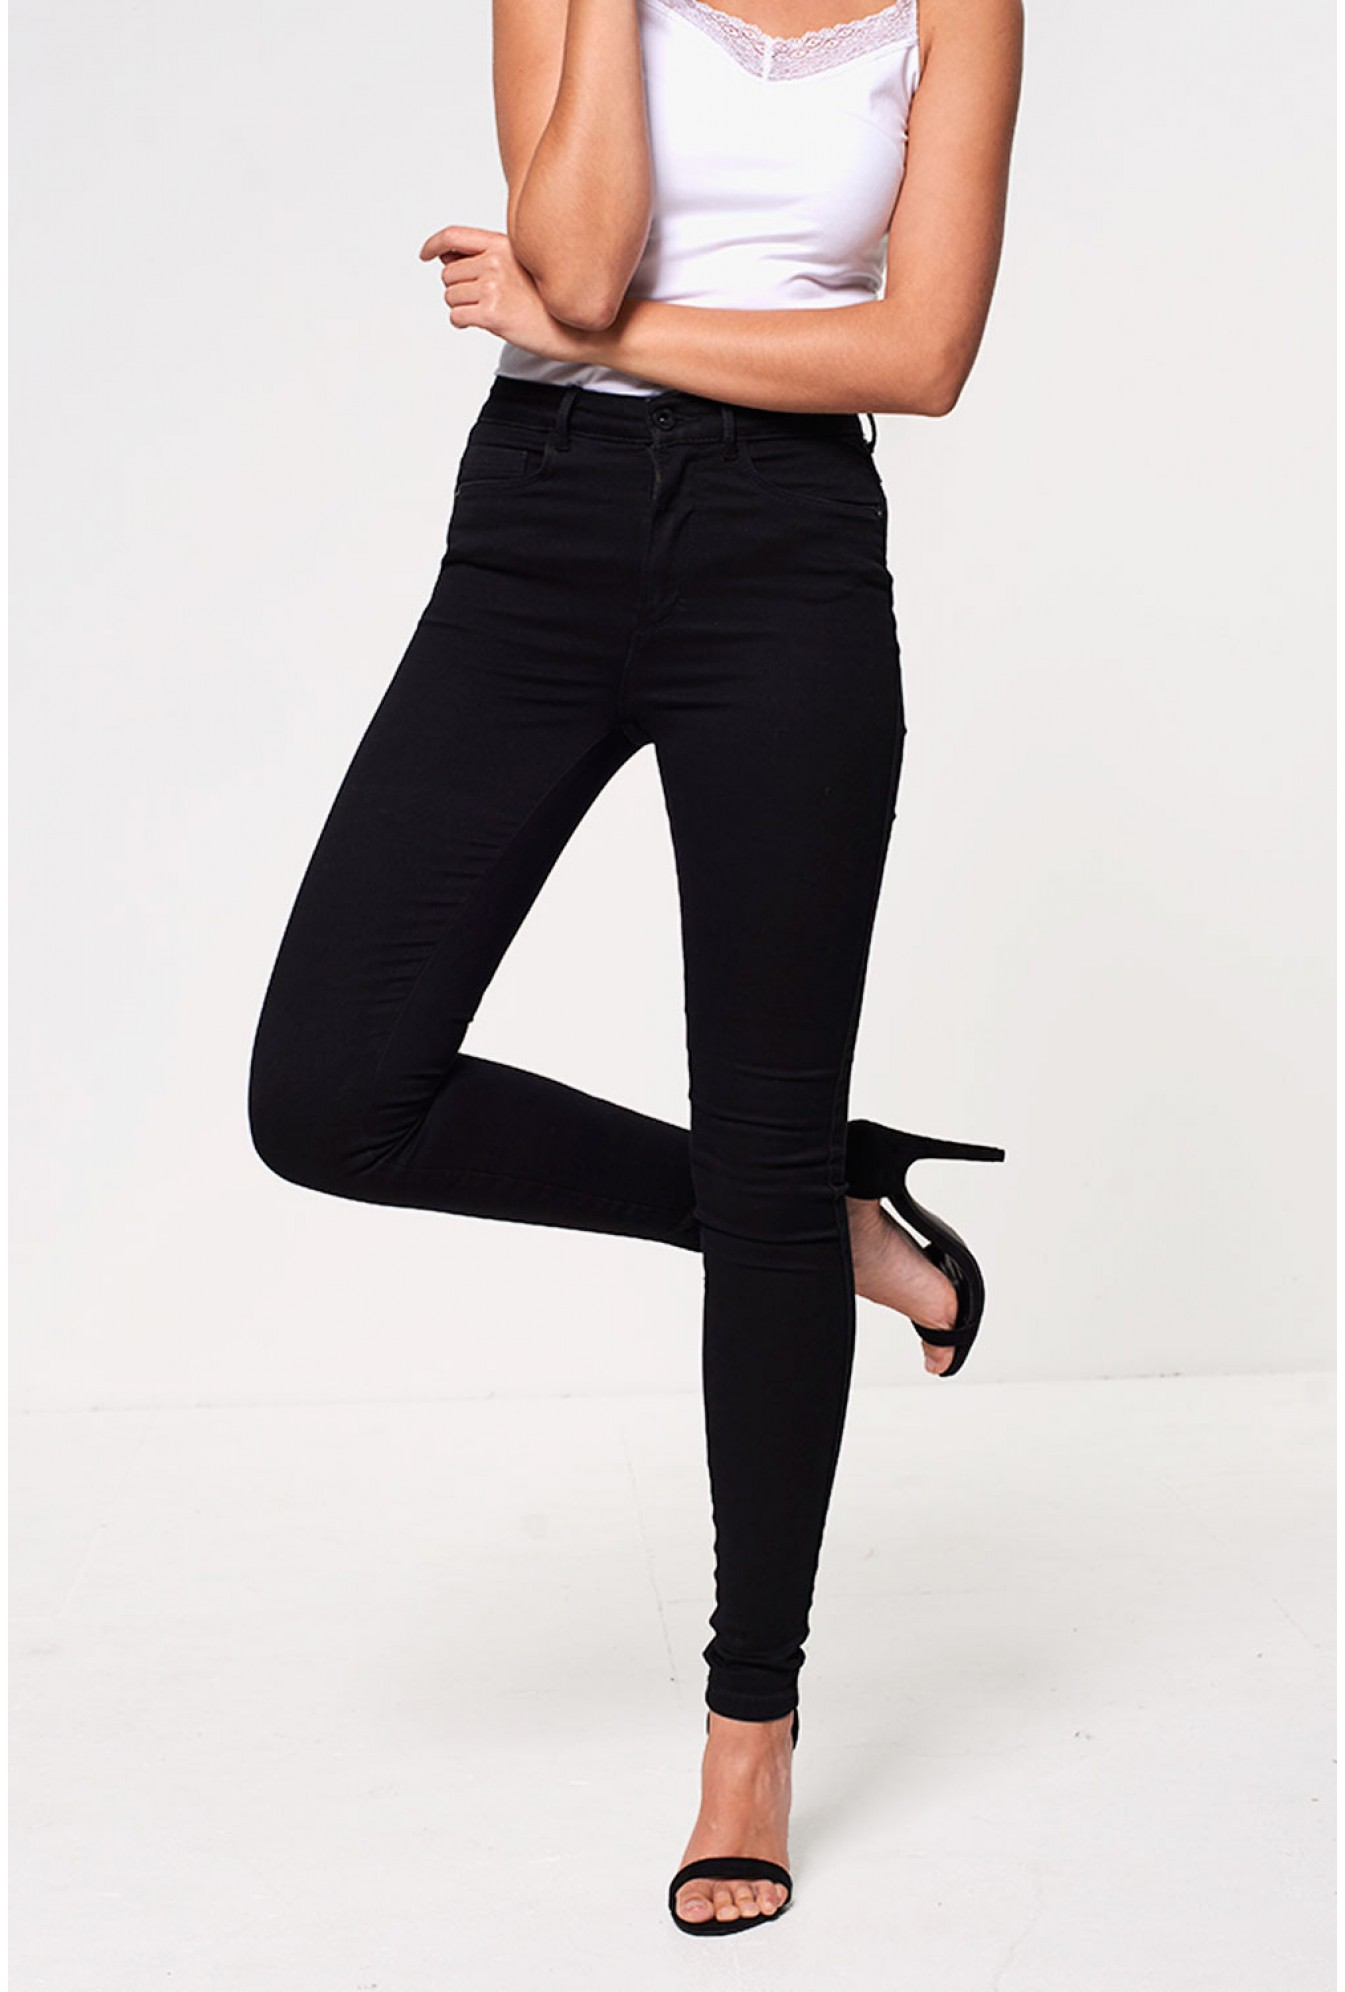 more photos preview of skate shoes Sophia Petite High Waist Skinny Jeans in Black